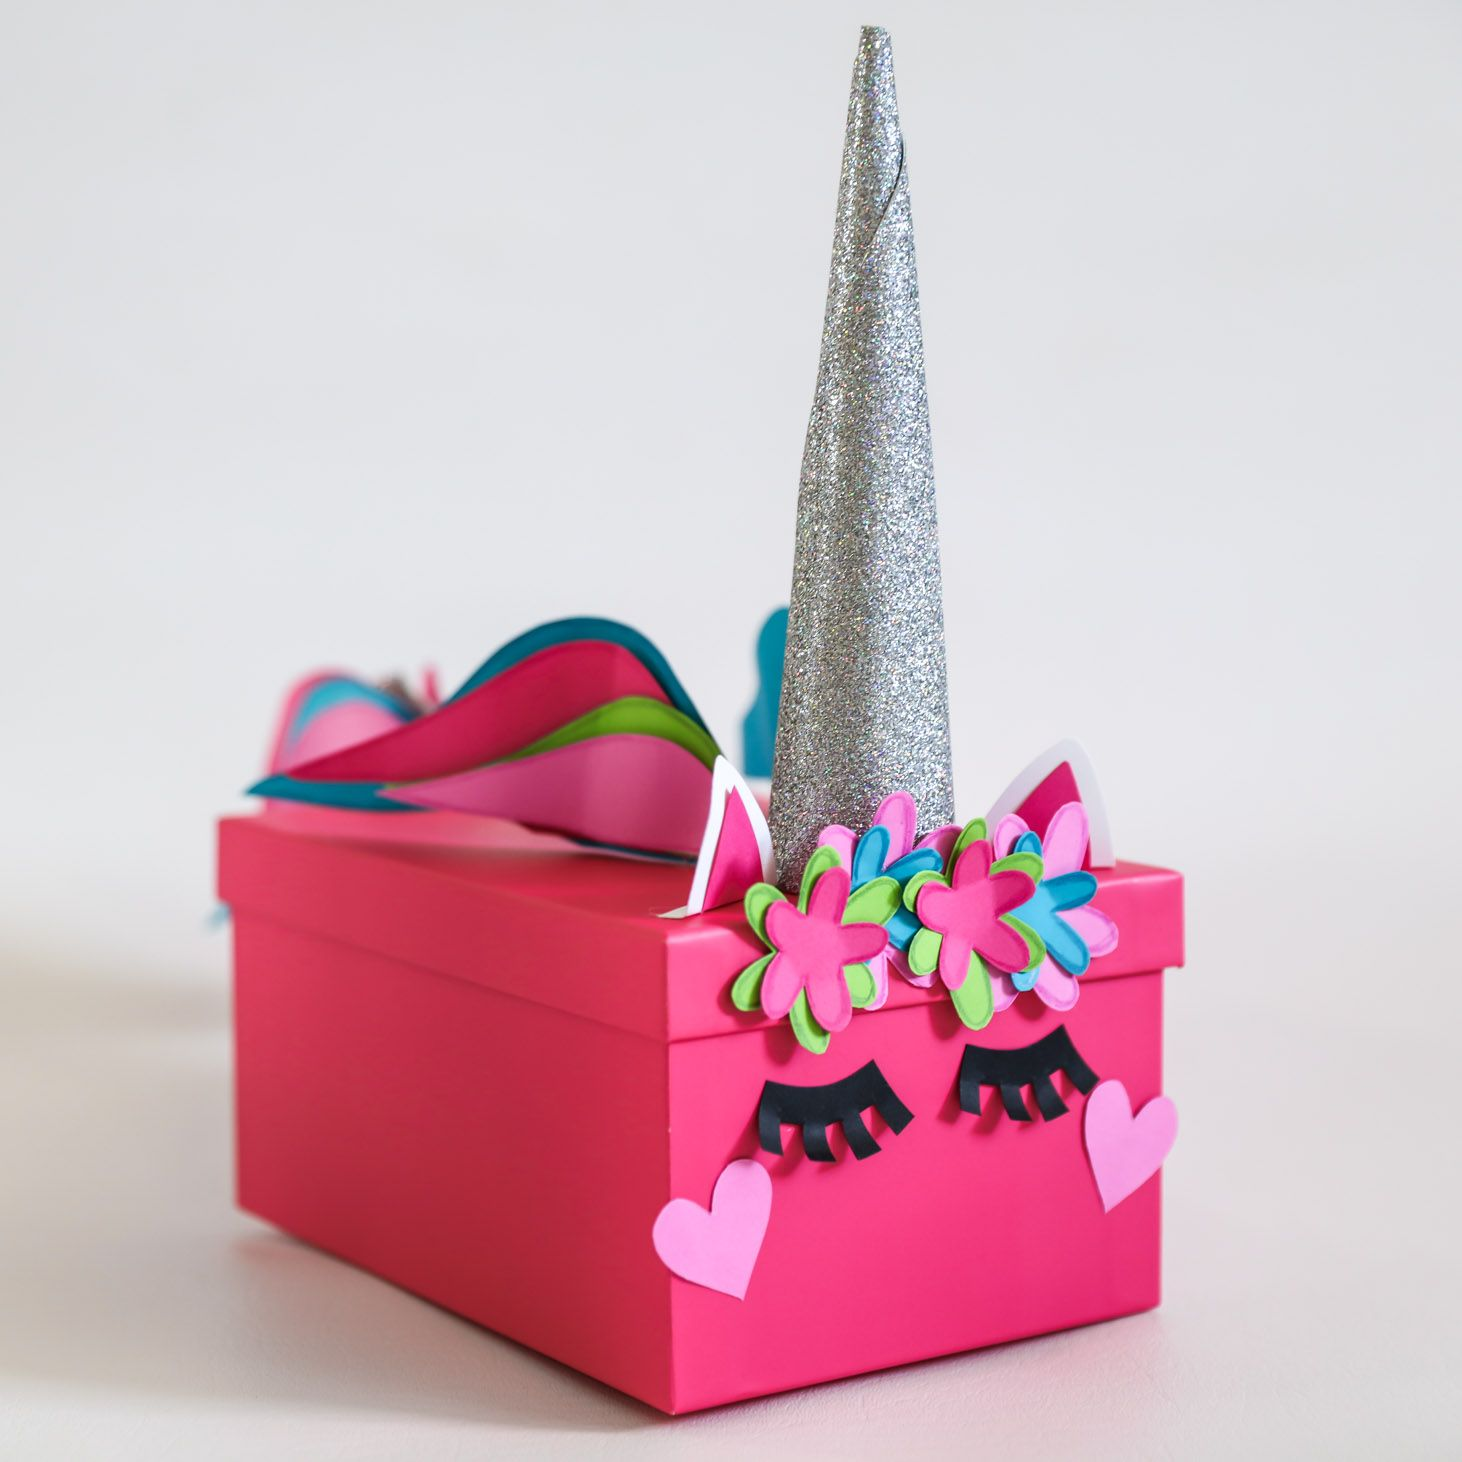 Valentines Box Ideas - Step-by-Step Unicorn, Robot & More! | Lil' Luna